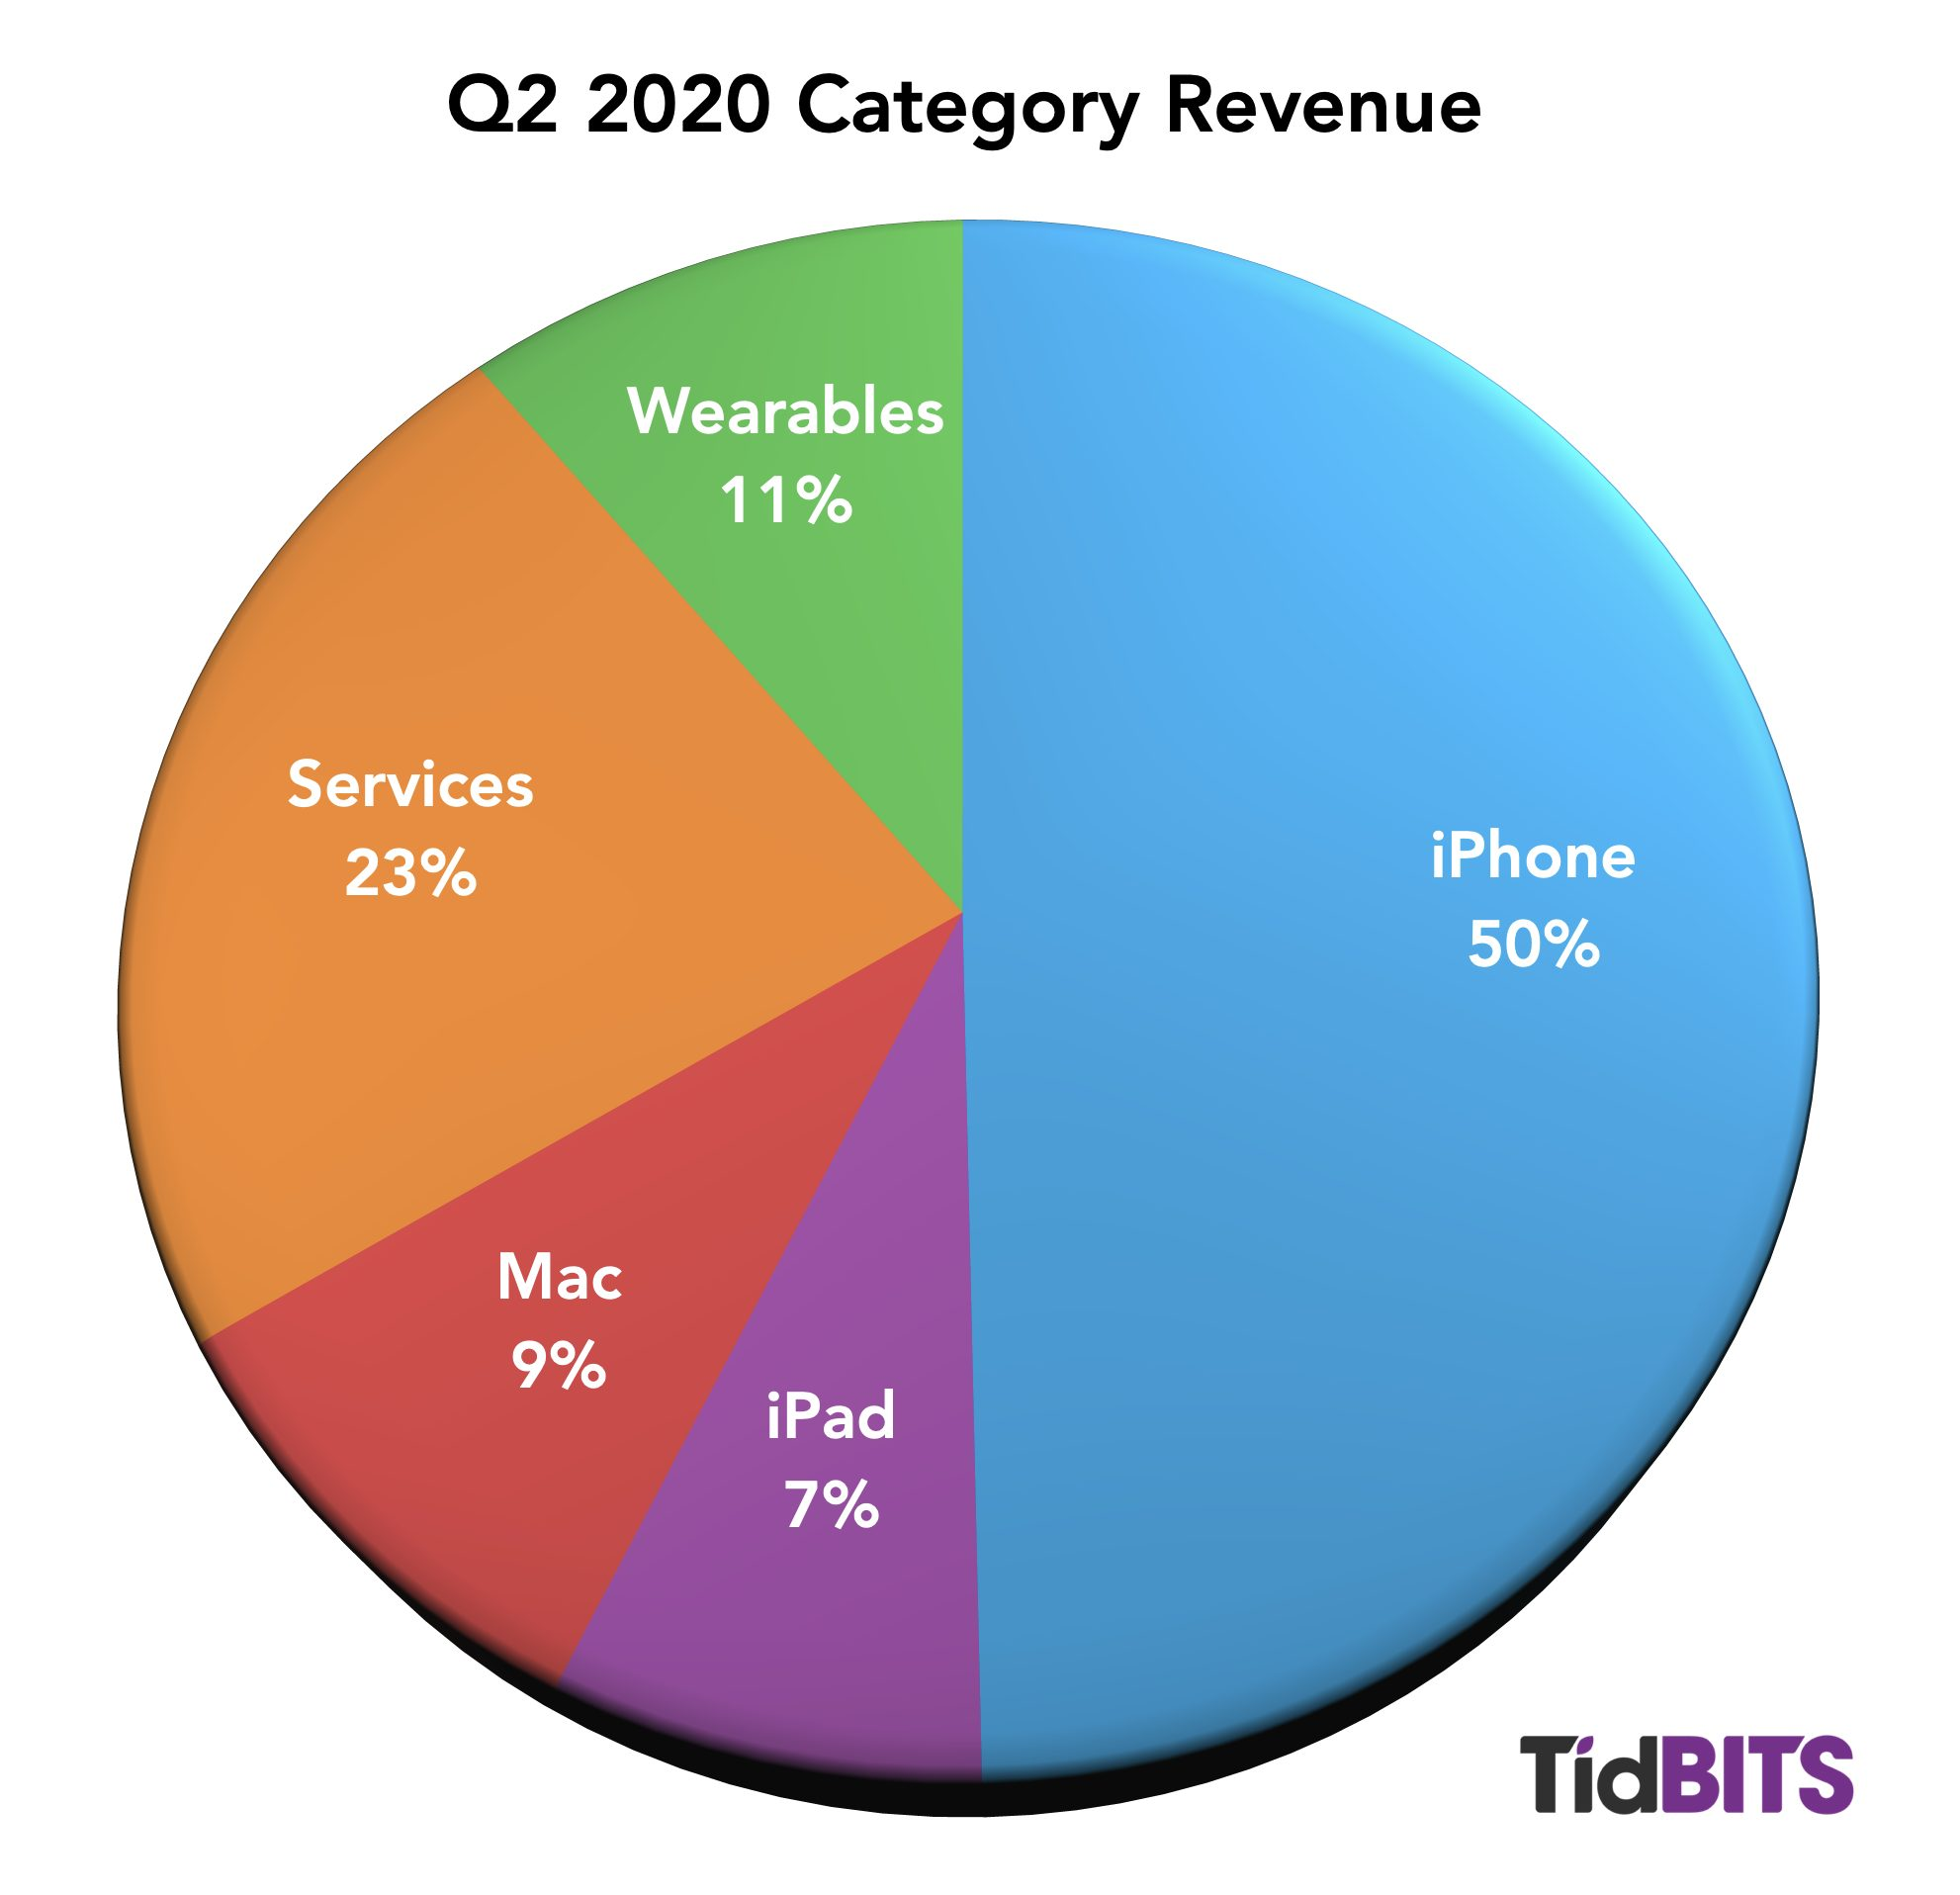 Q2 2020 Apple revenue share by category